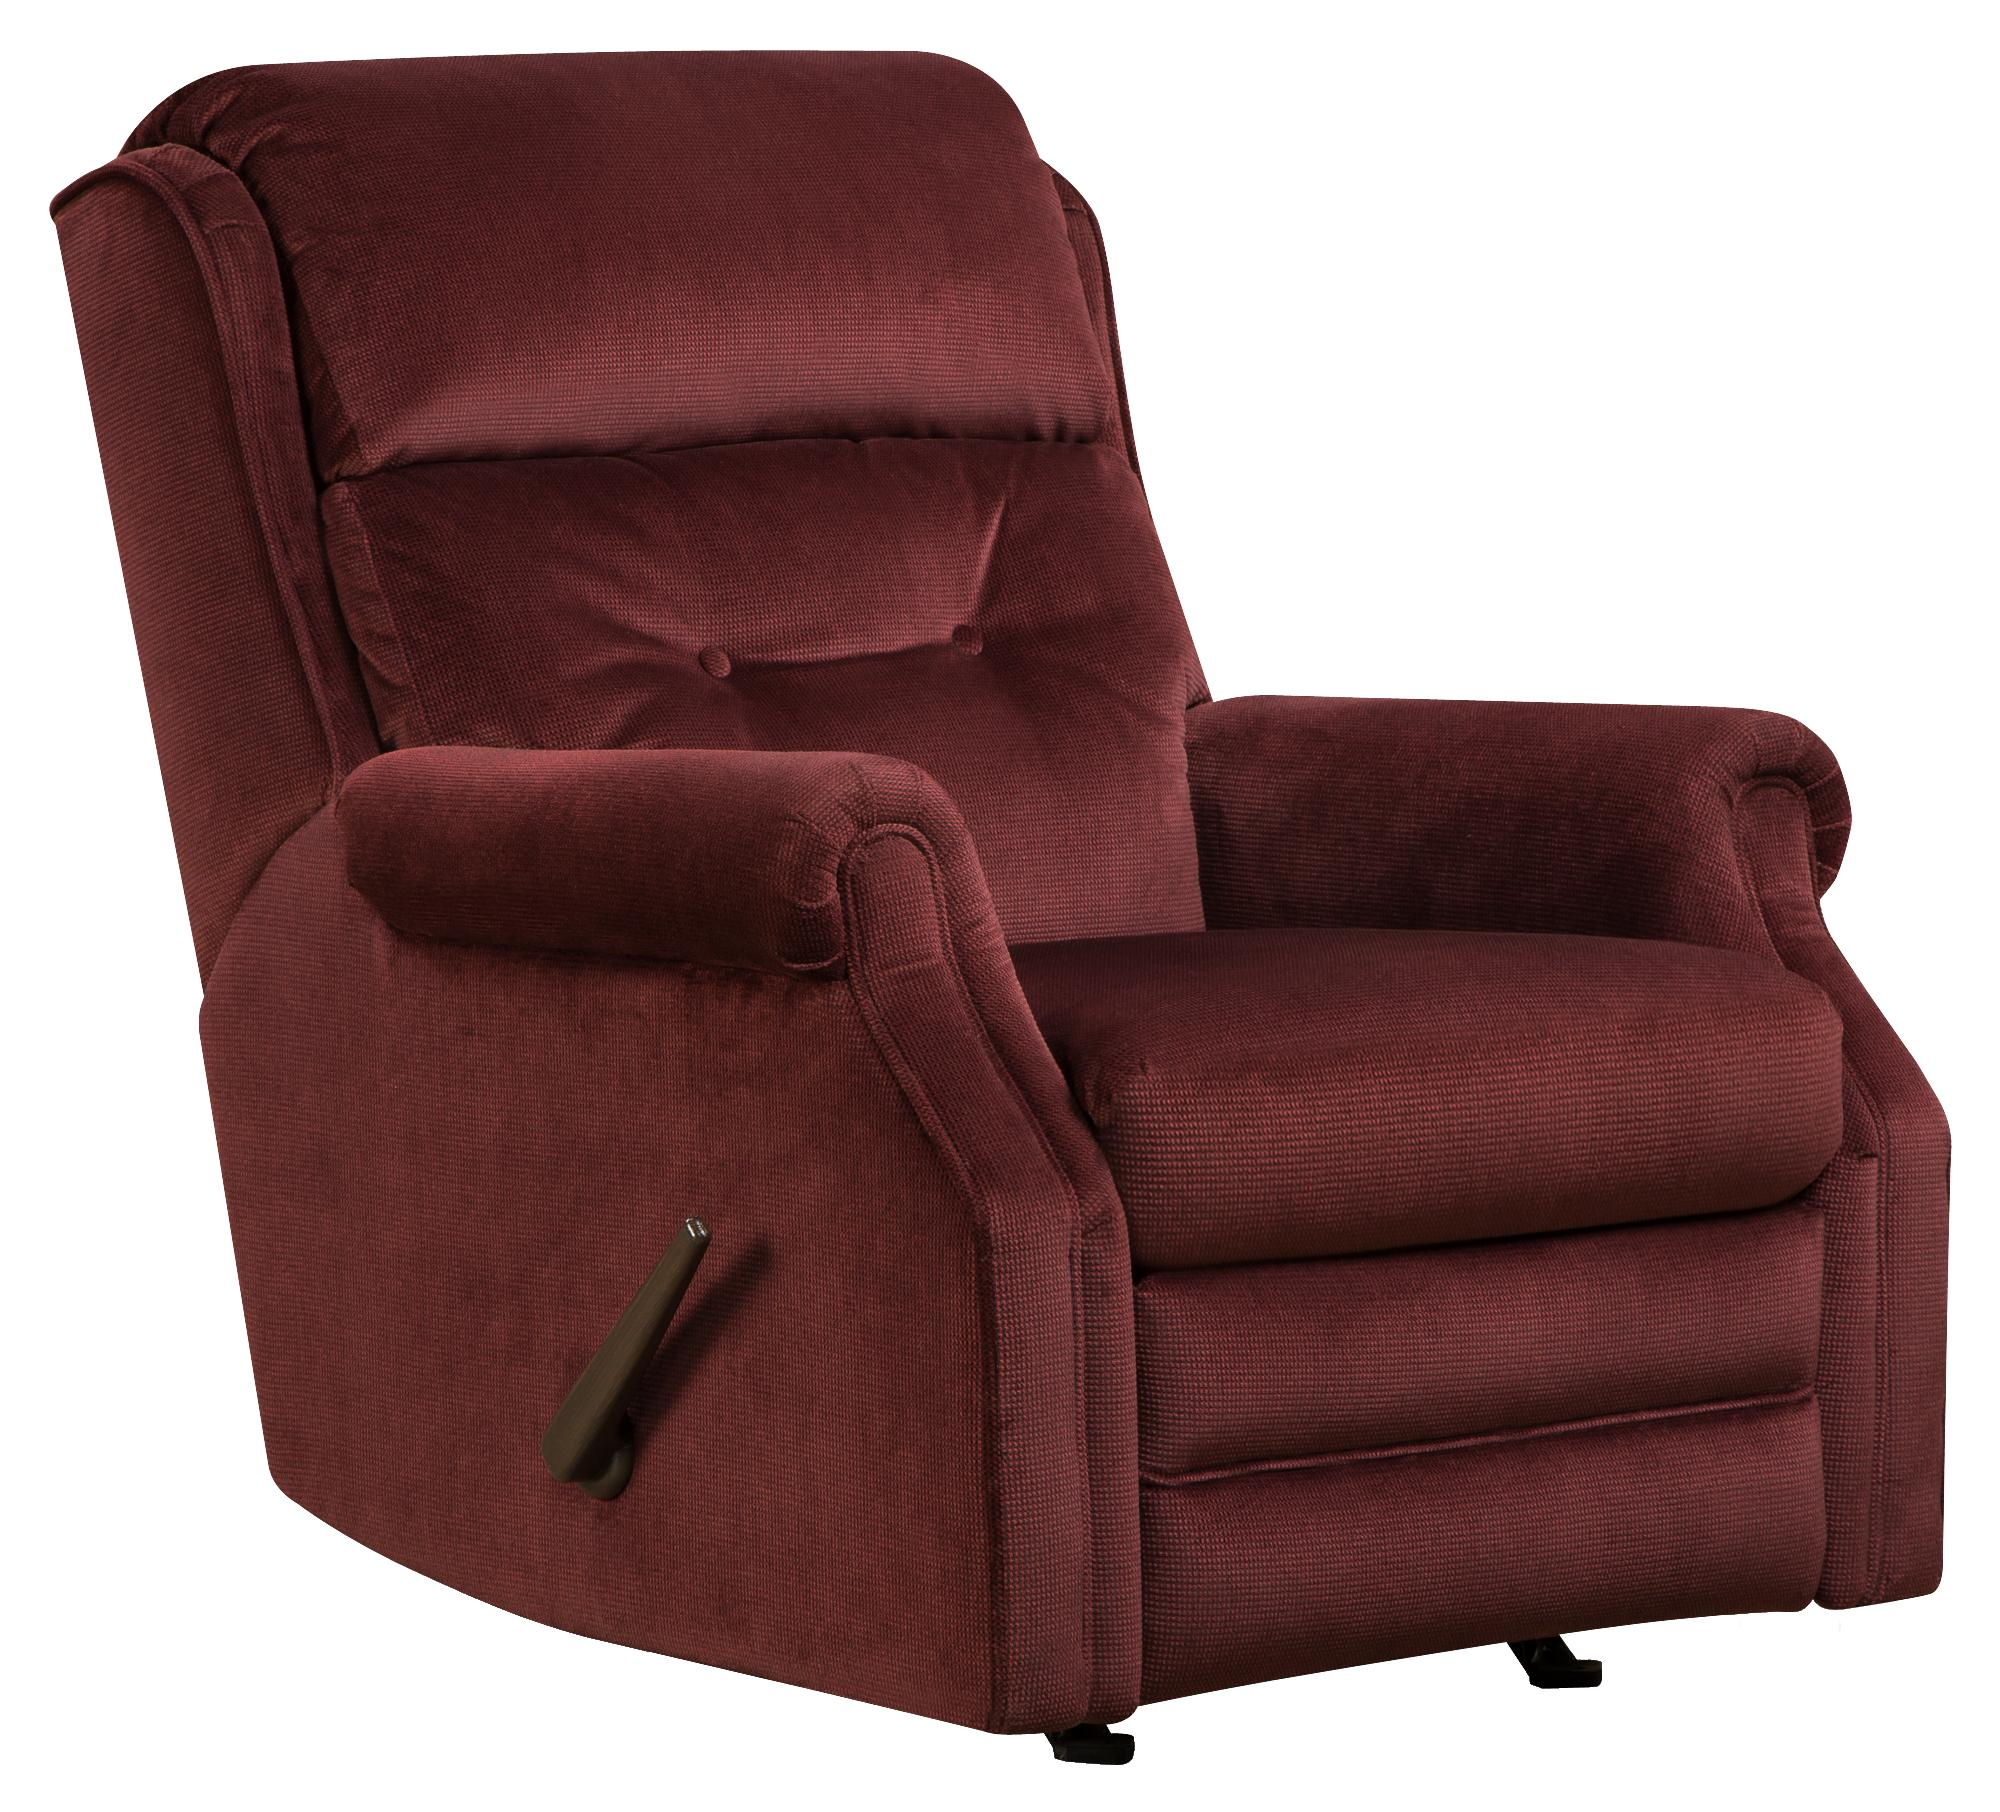 Southern Motion Recliners Nantucket Wall Recliner with